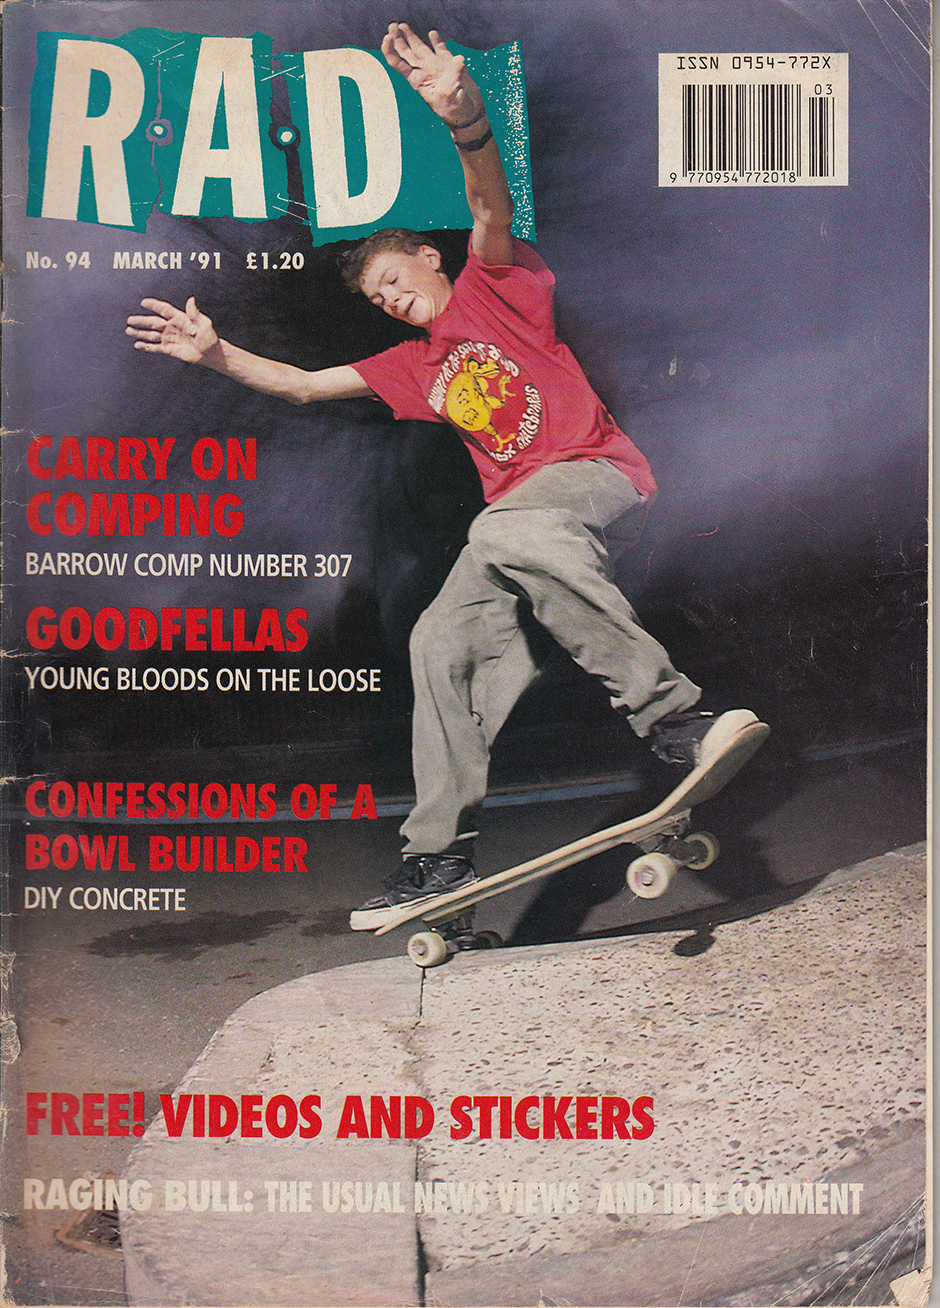 Rad Magazine cover from March 1991. Praise be for Cro-Bar Rail graphic preservation